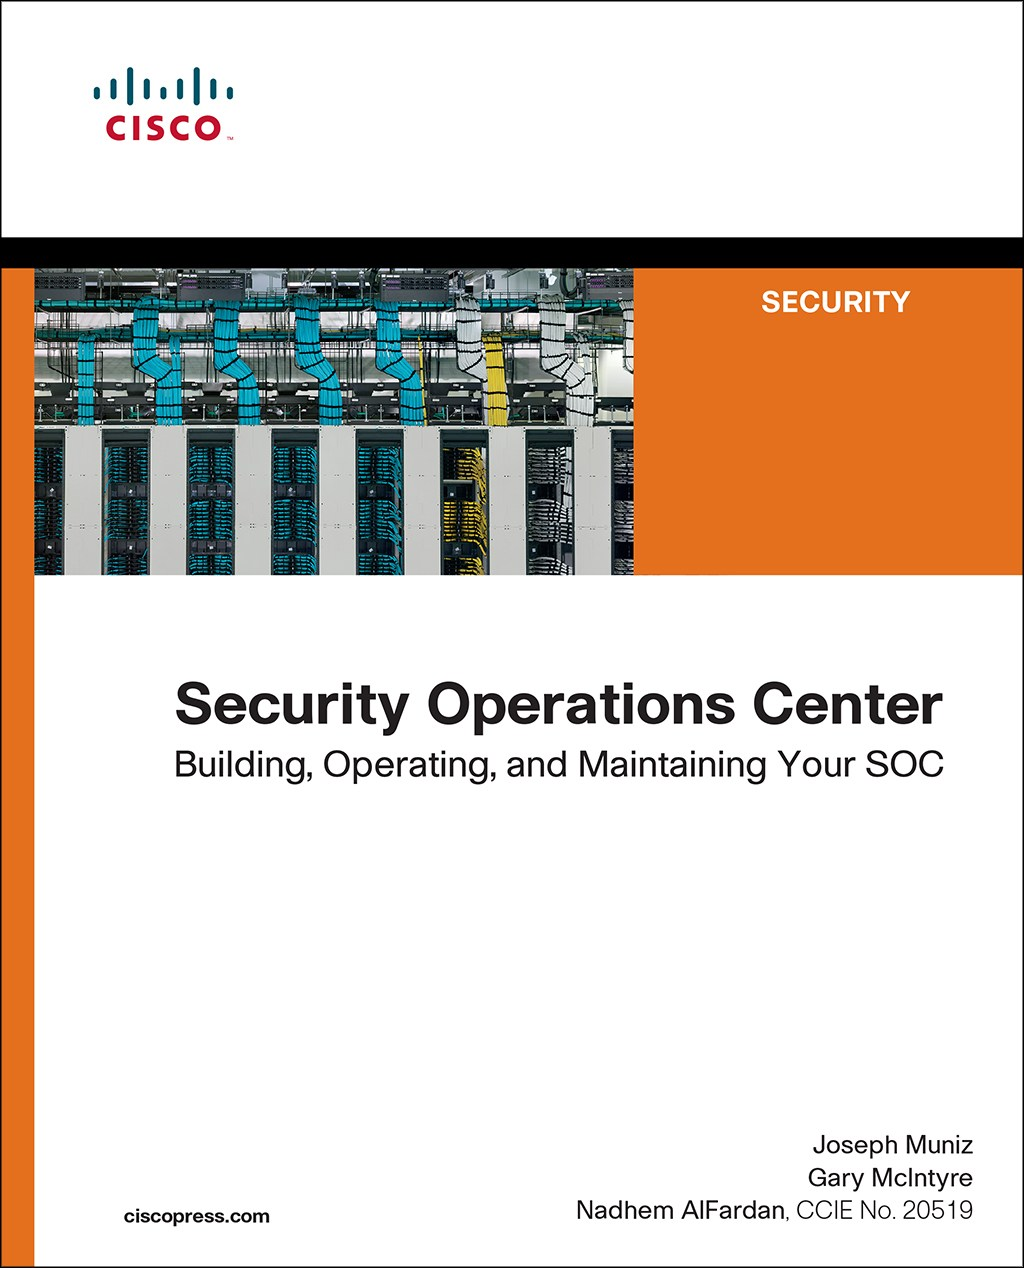 Security Operations Center: Building, Operating and Maintaining your SOC